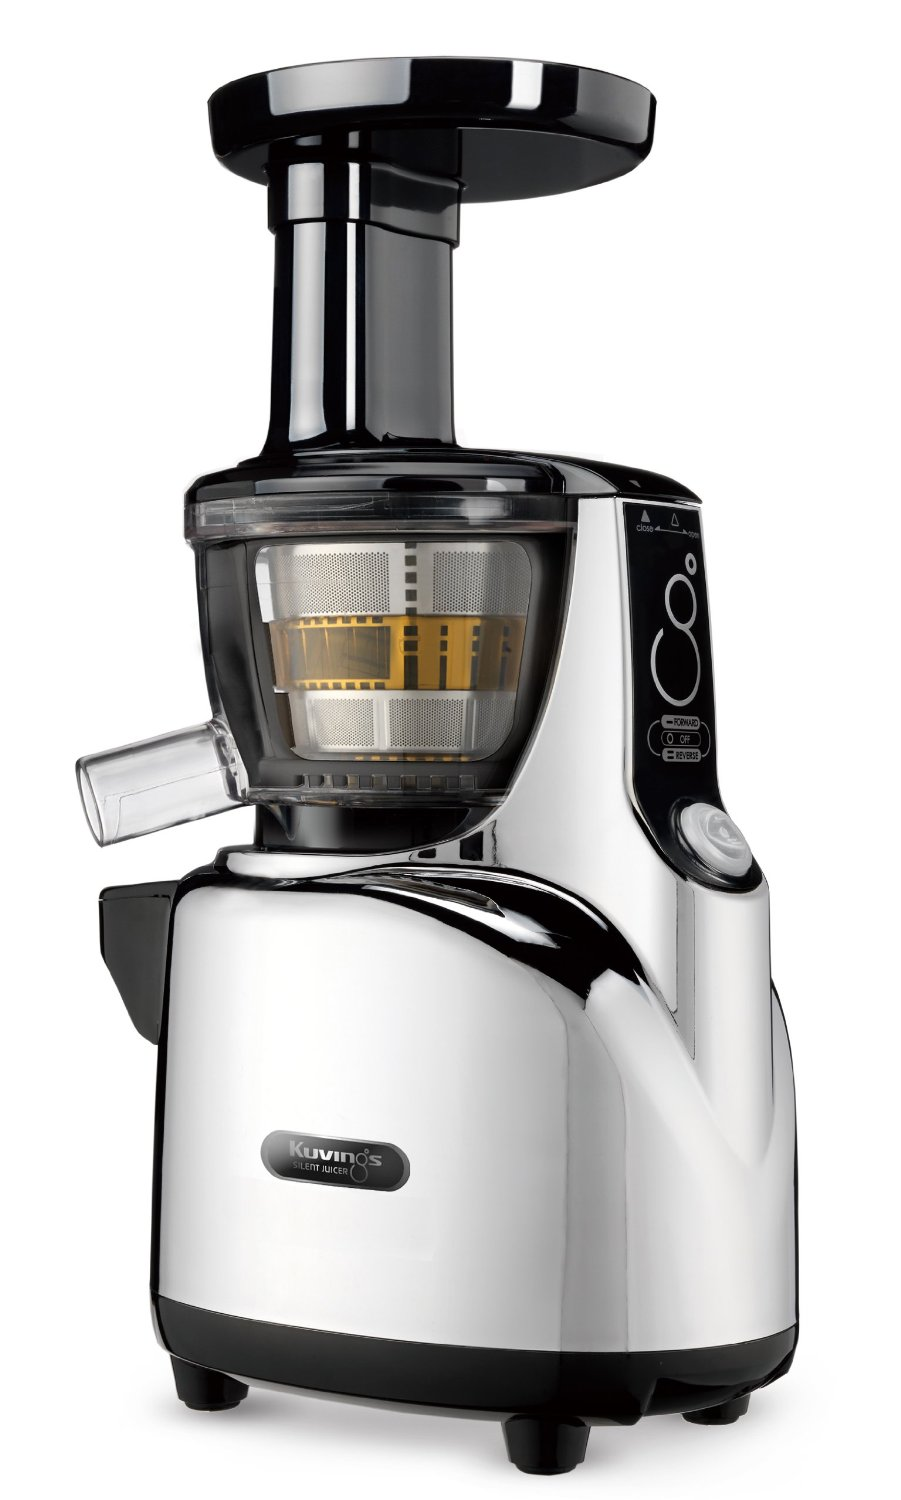 Kuvings Slow Juicer Review : 5 Best Kuvings Juicer Reviews UPDATED: 2018 The Home Savant